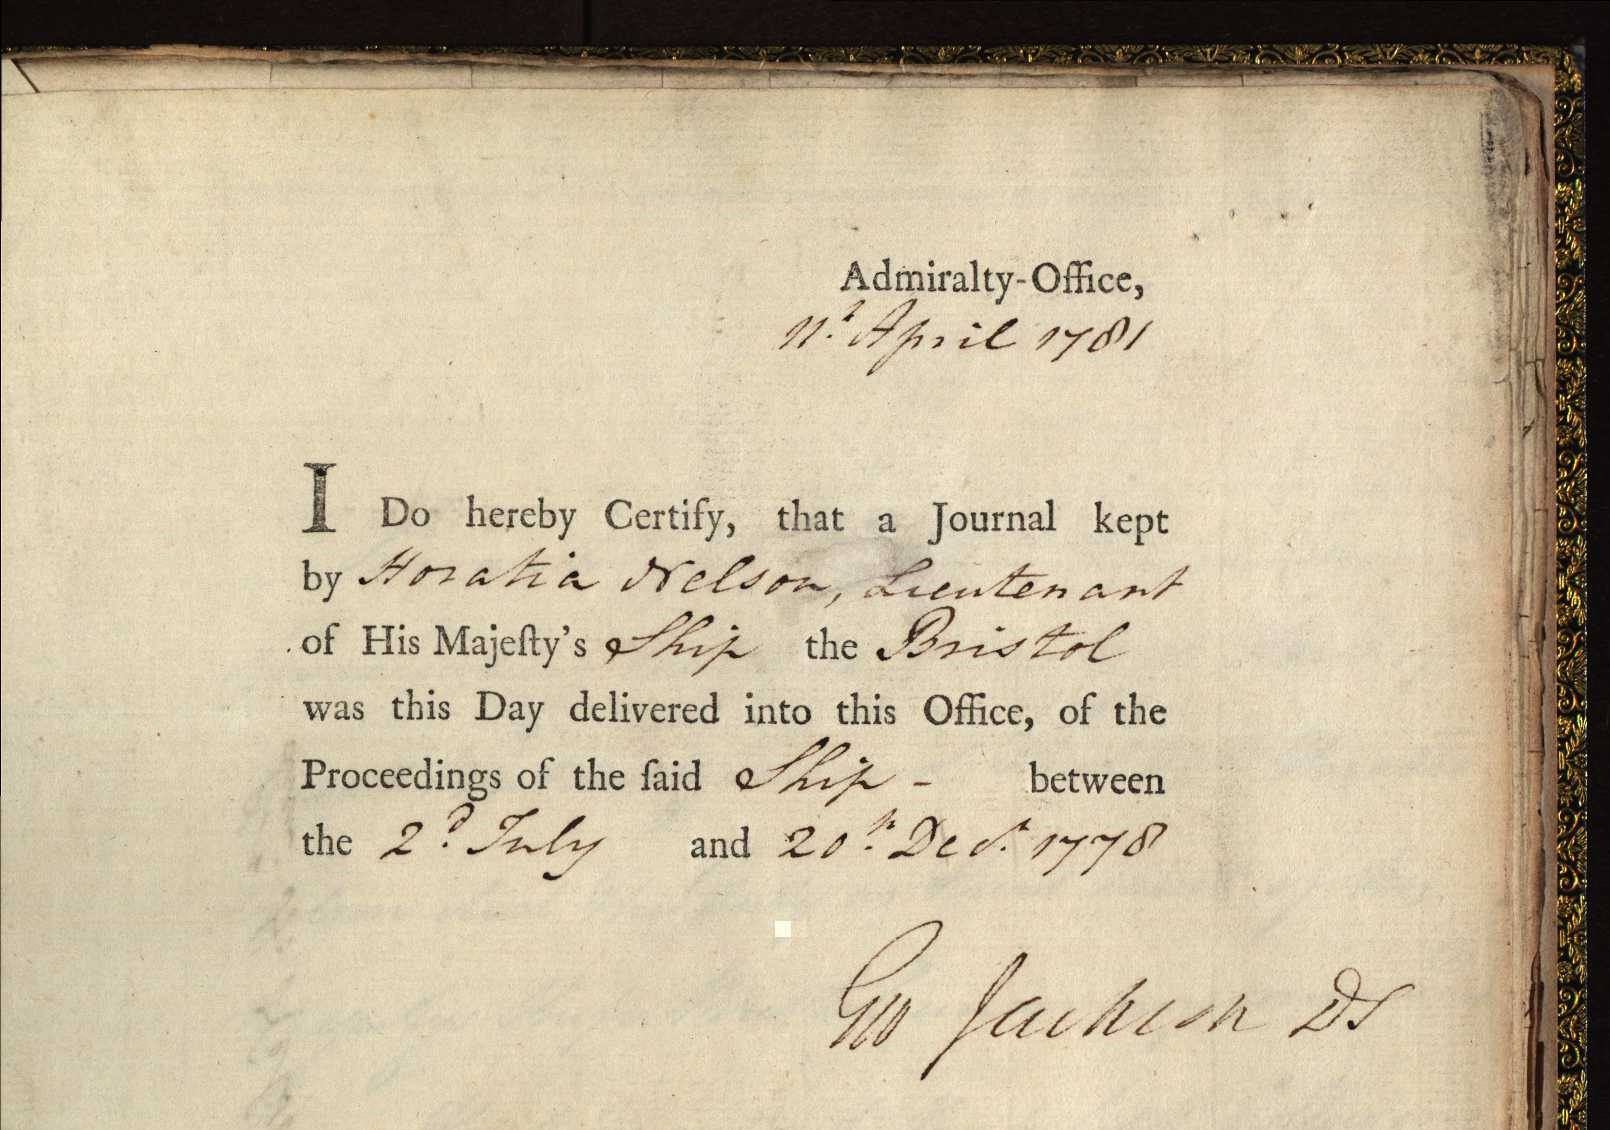 Admiralty certificate for receipt of Lieutenant Horatio Nelson's log book